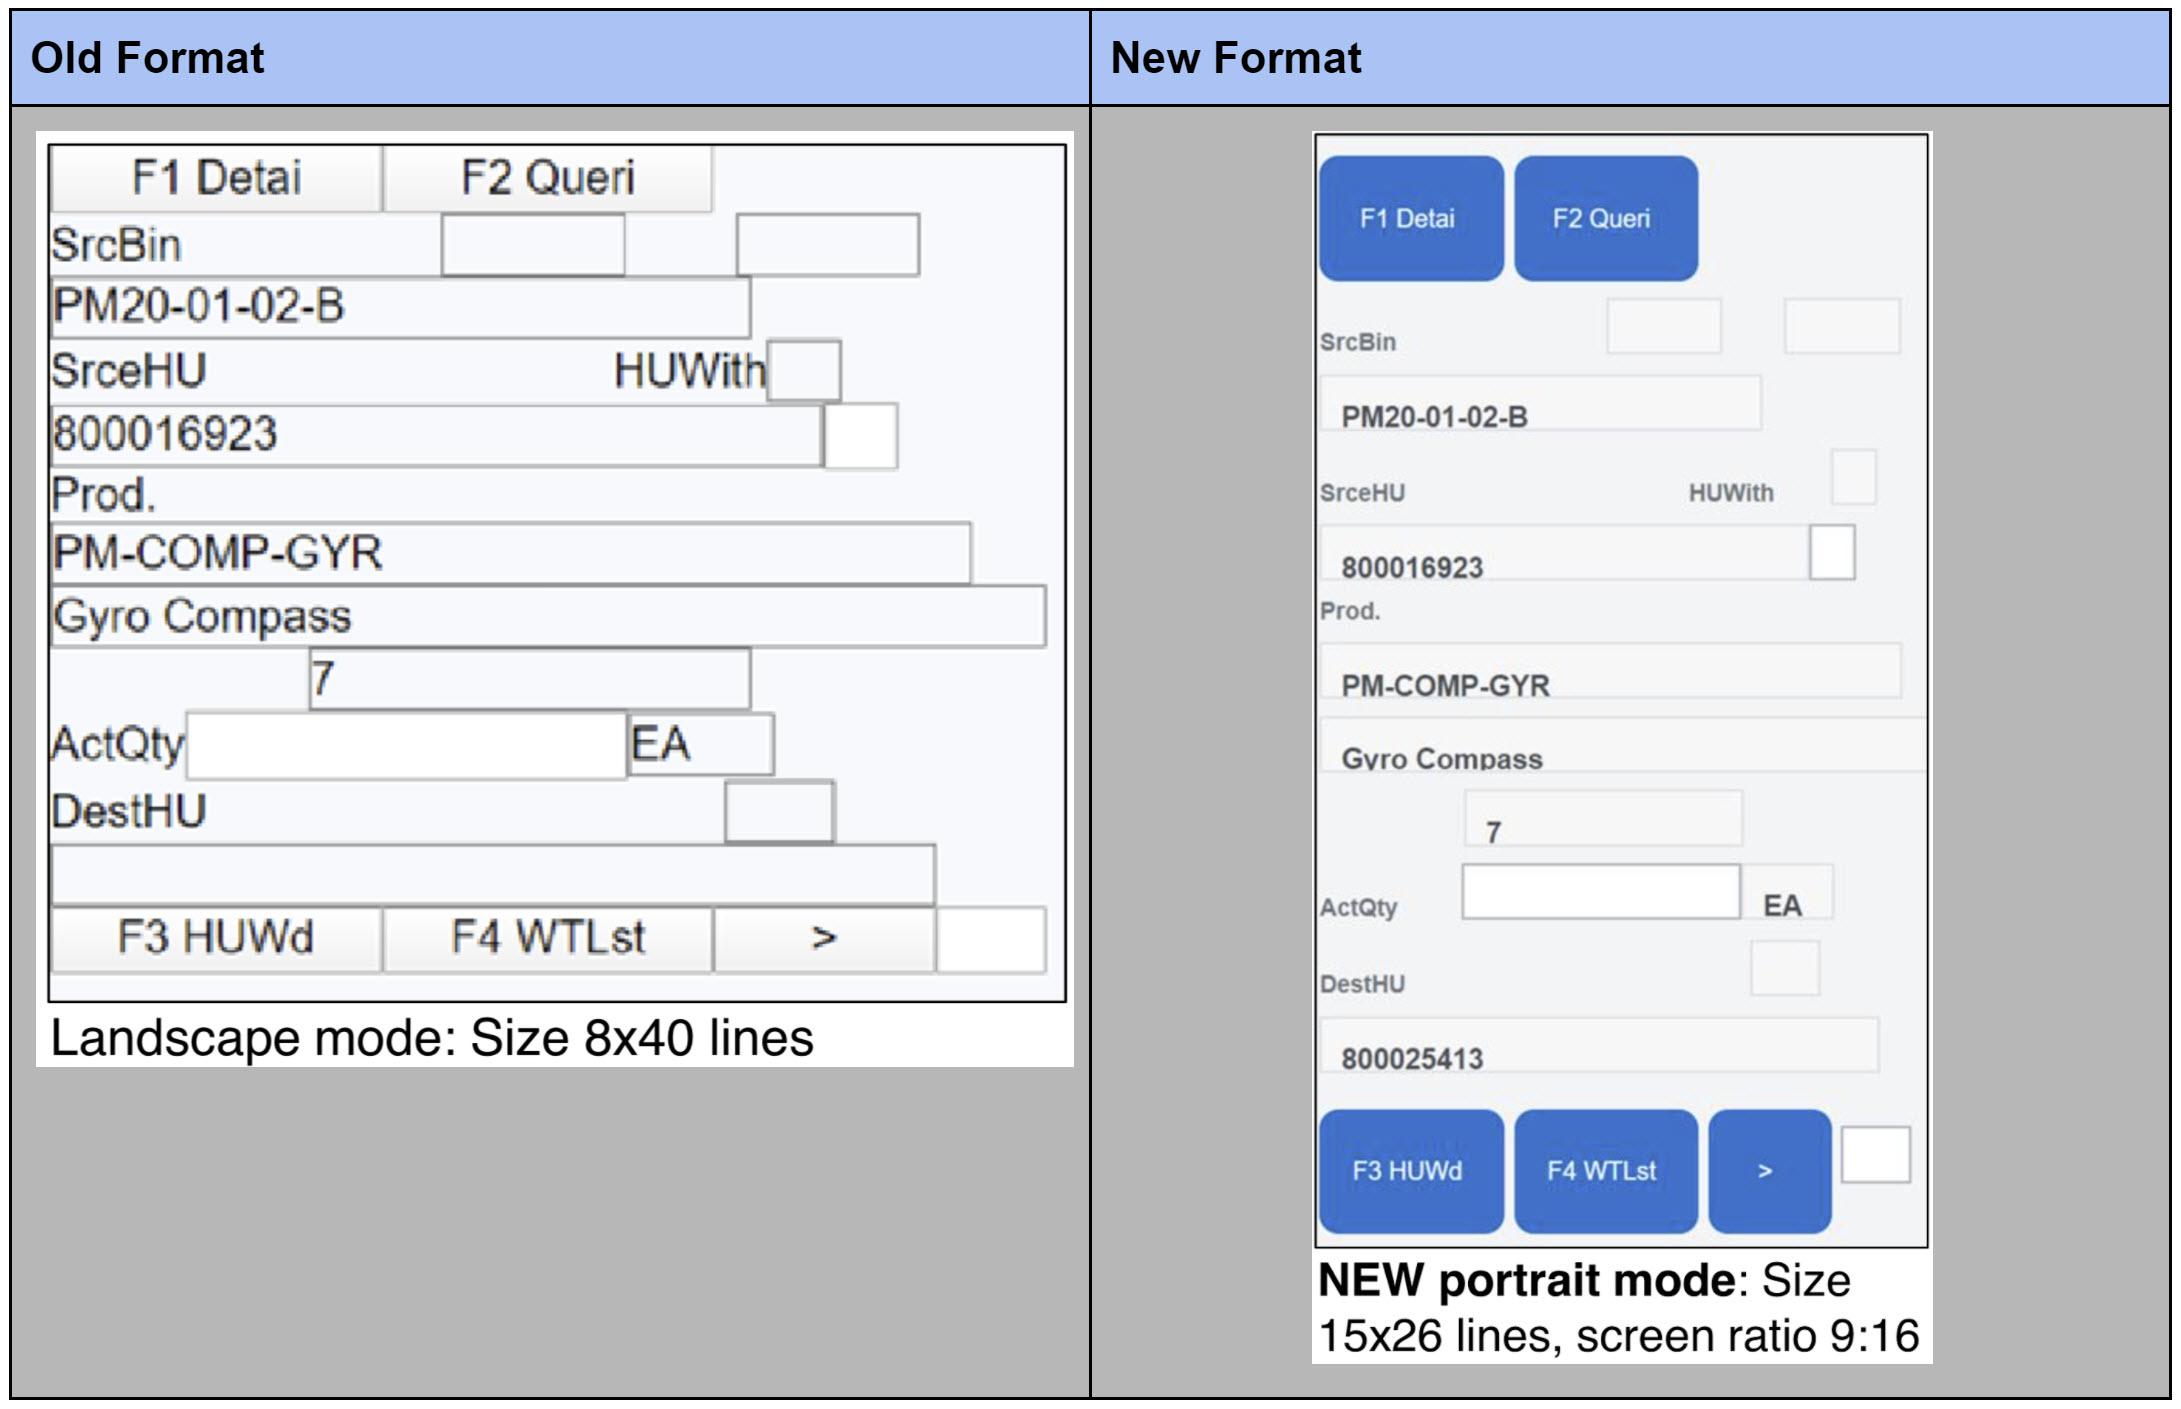 RF Portrait Mode for EWM on S/4HANA 2020